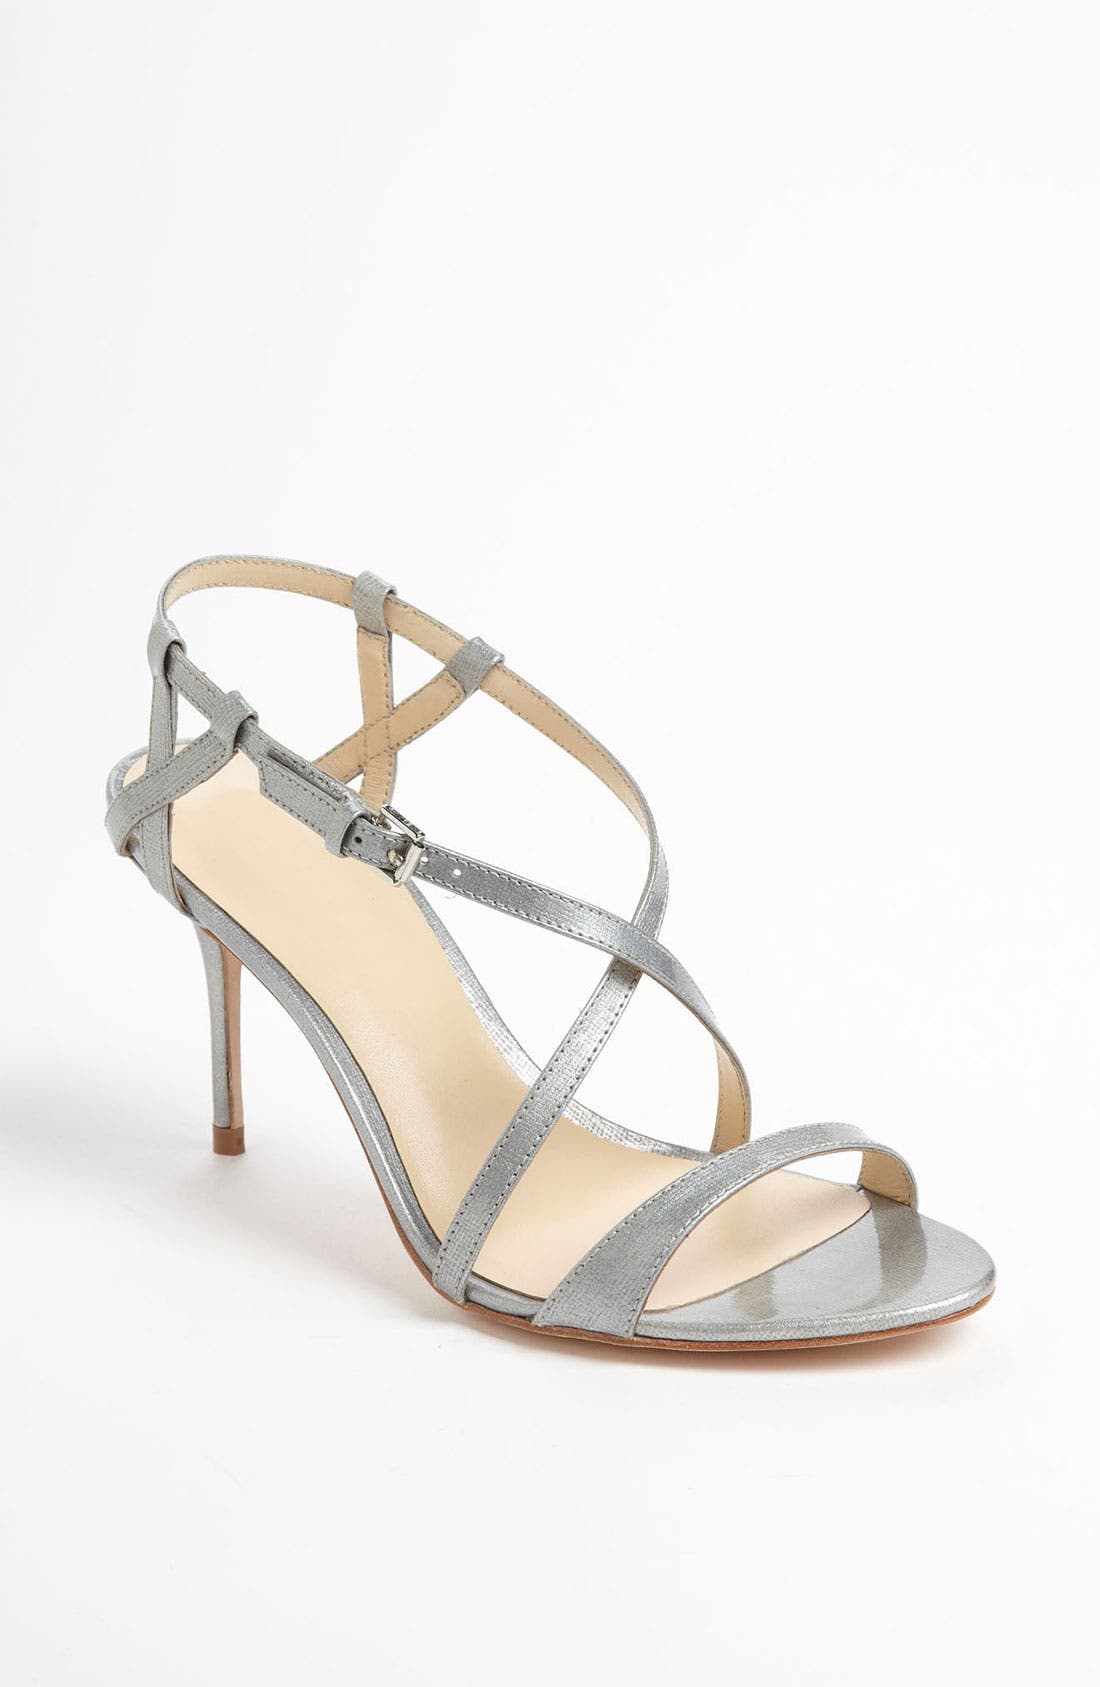 Alternate Image 1 Selected - Charles David 'Bezel' Sandal